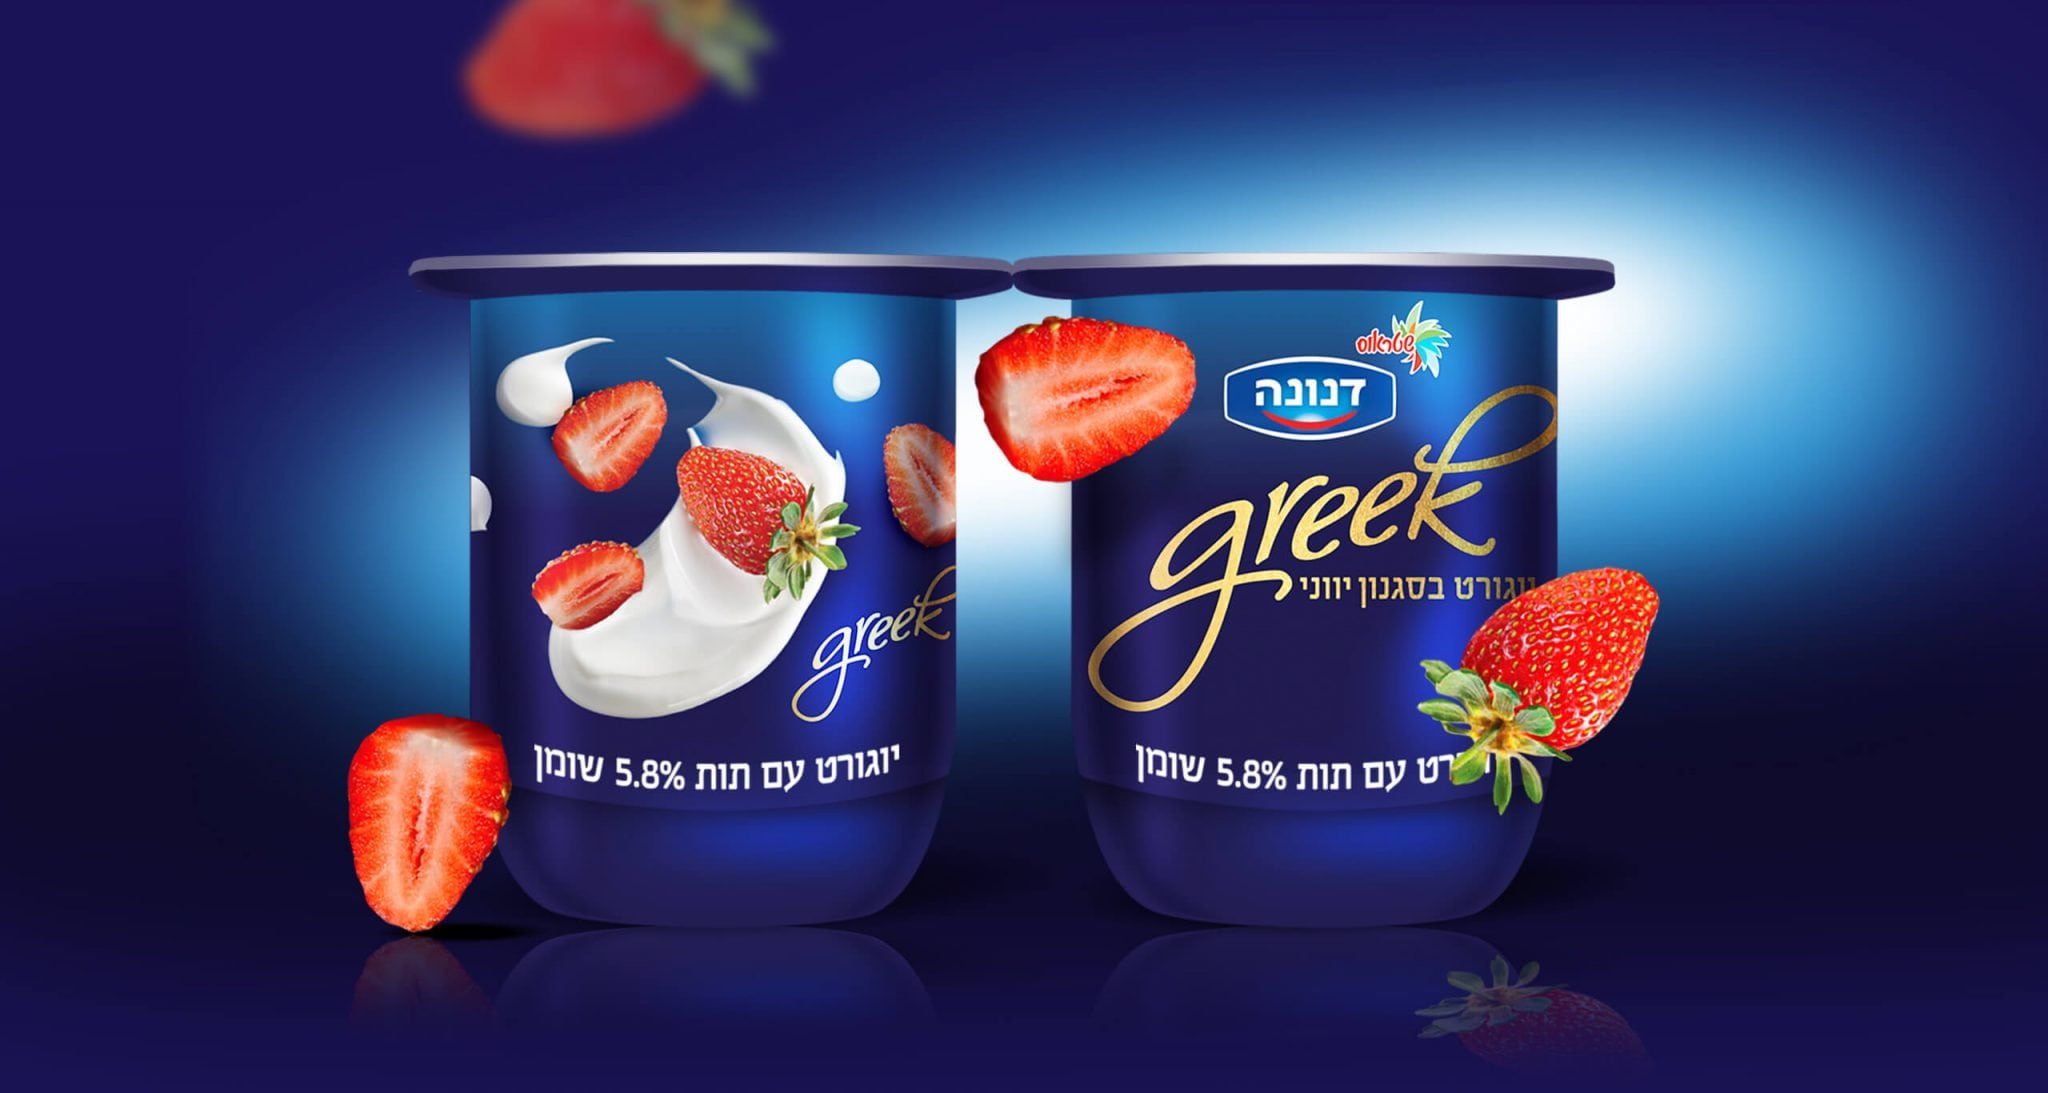 danone greek page3_1